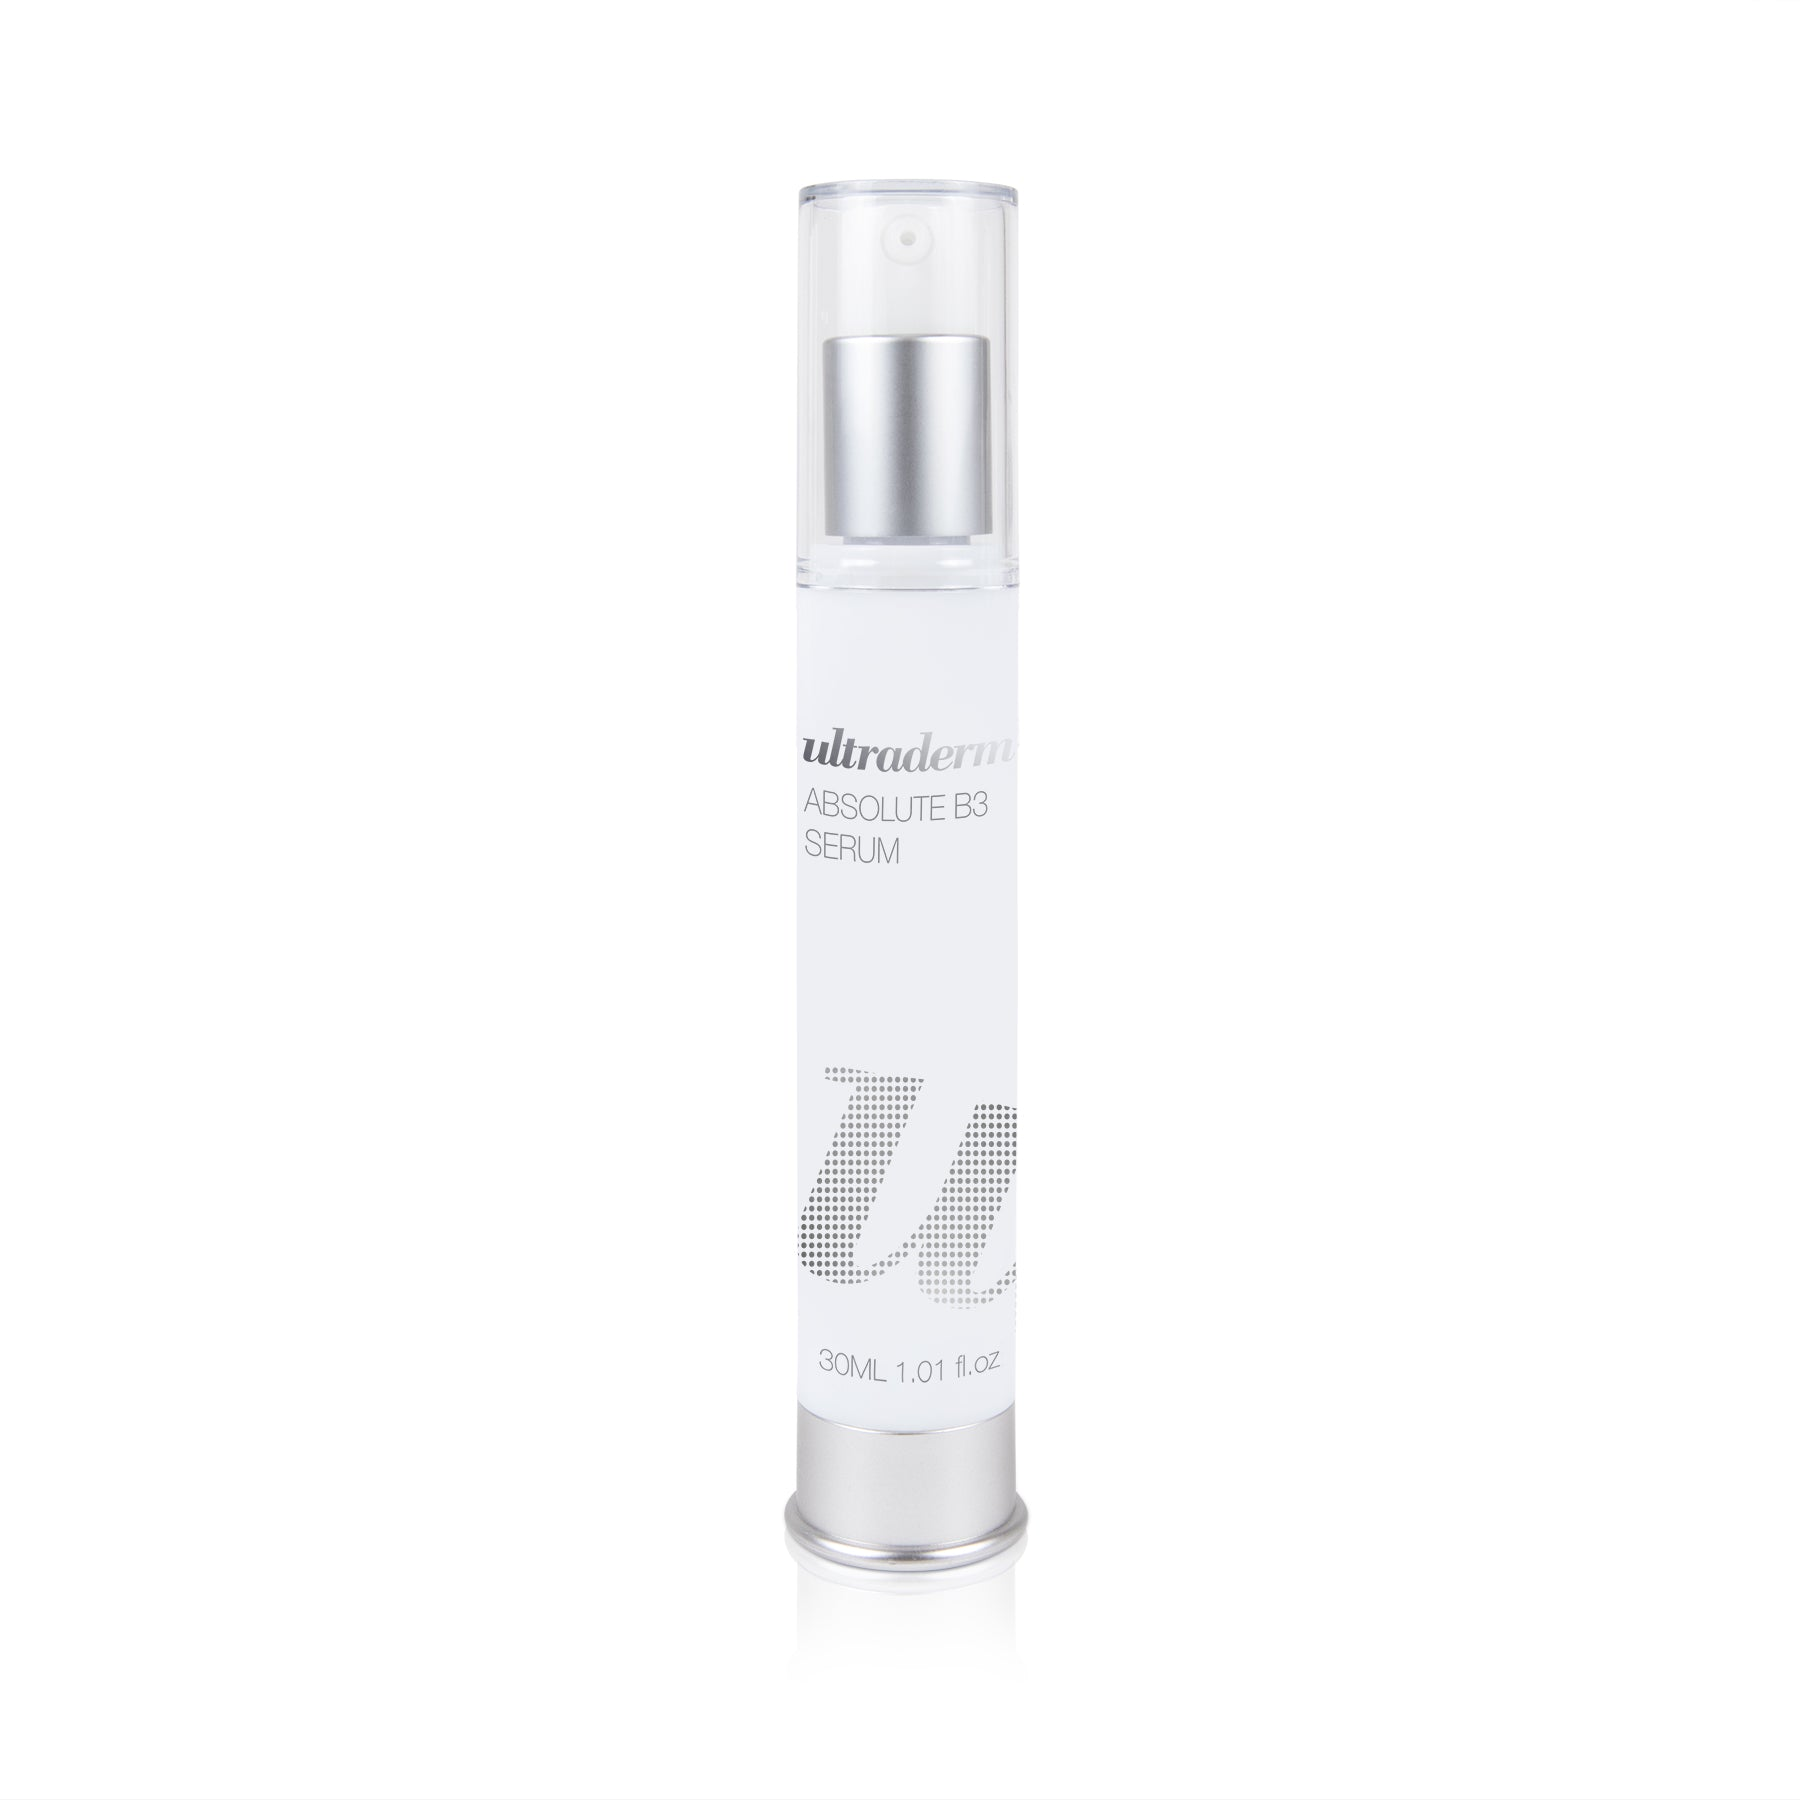 Ultraderm Absolute B3 Serum, Hydrating Vitamin B Serum